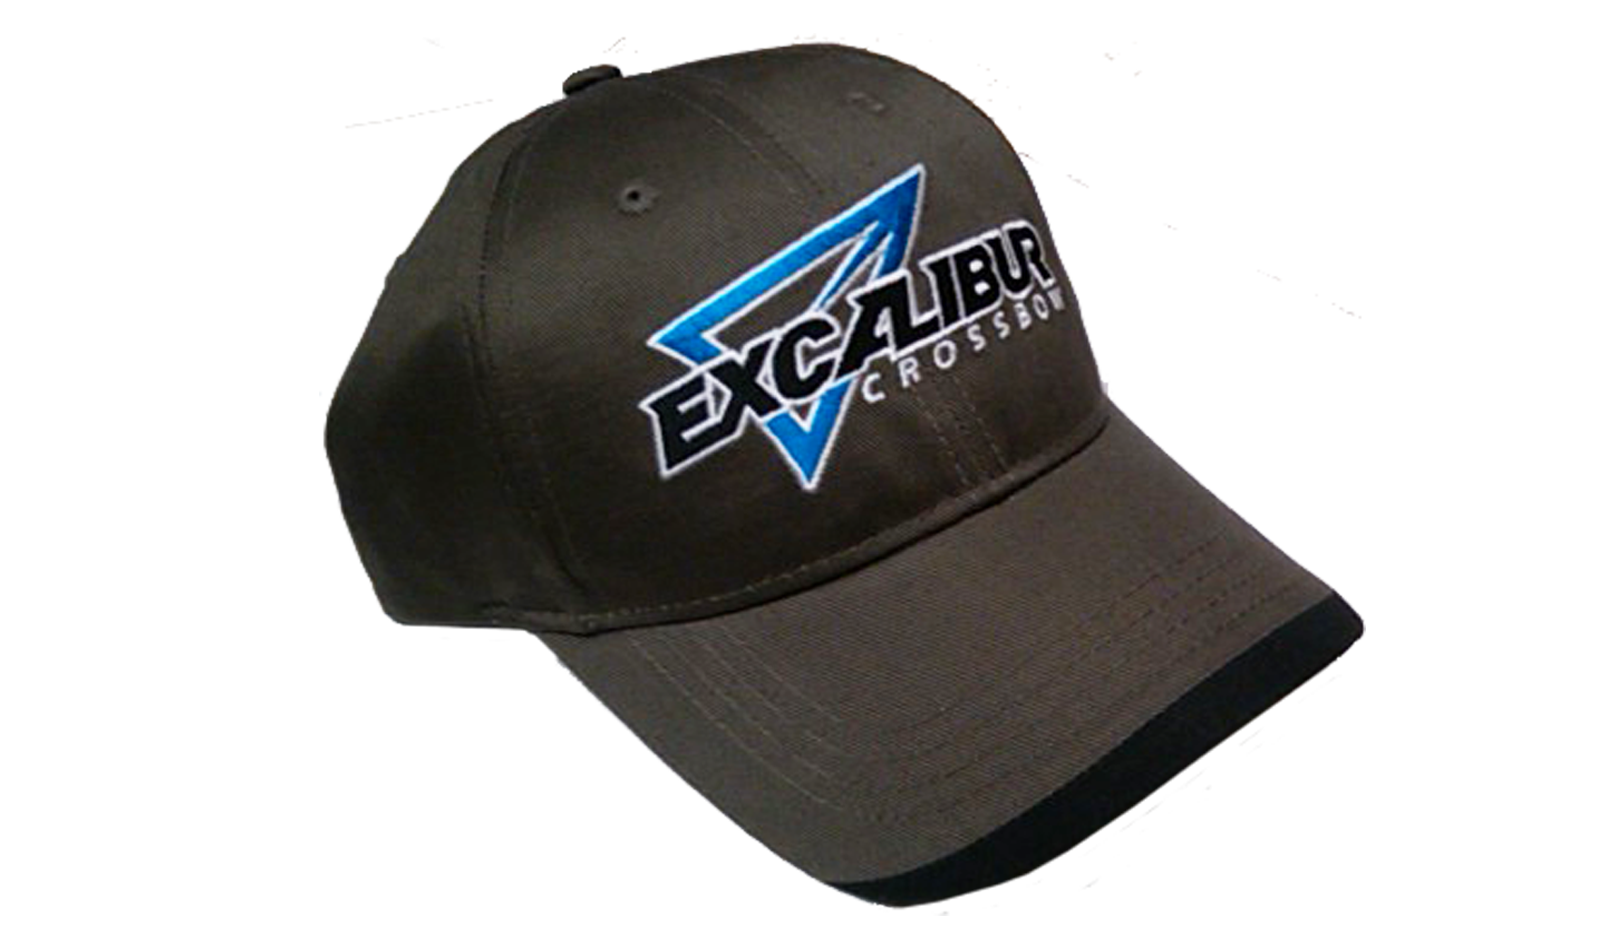 Excalibur Brown/black Cap